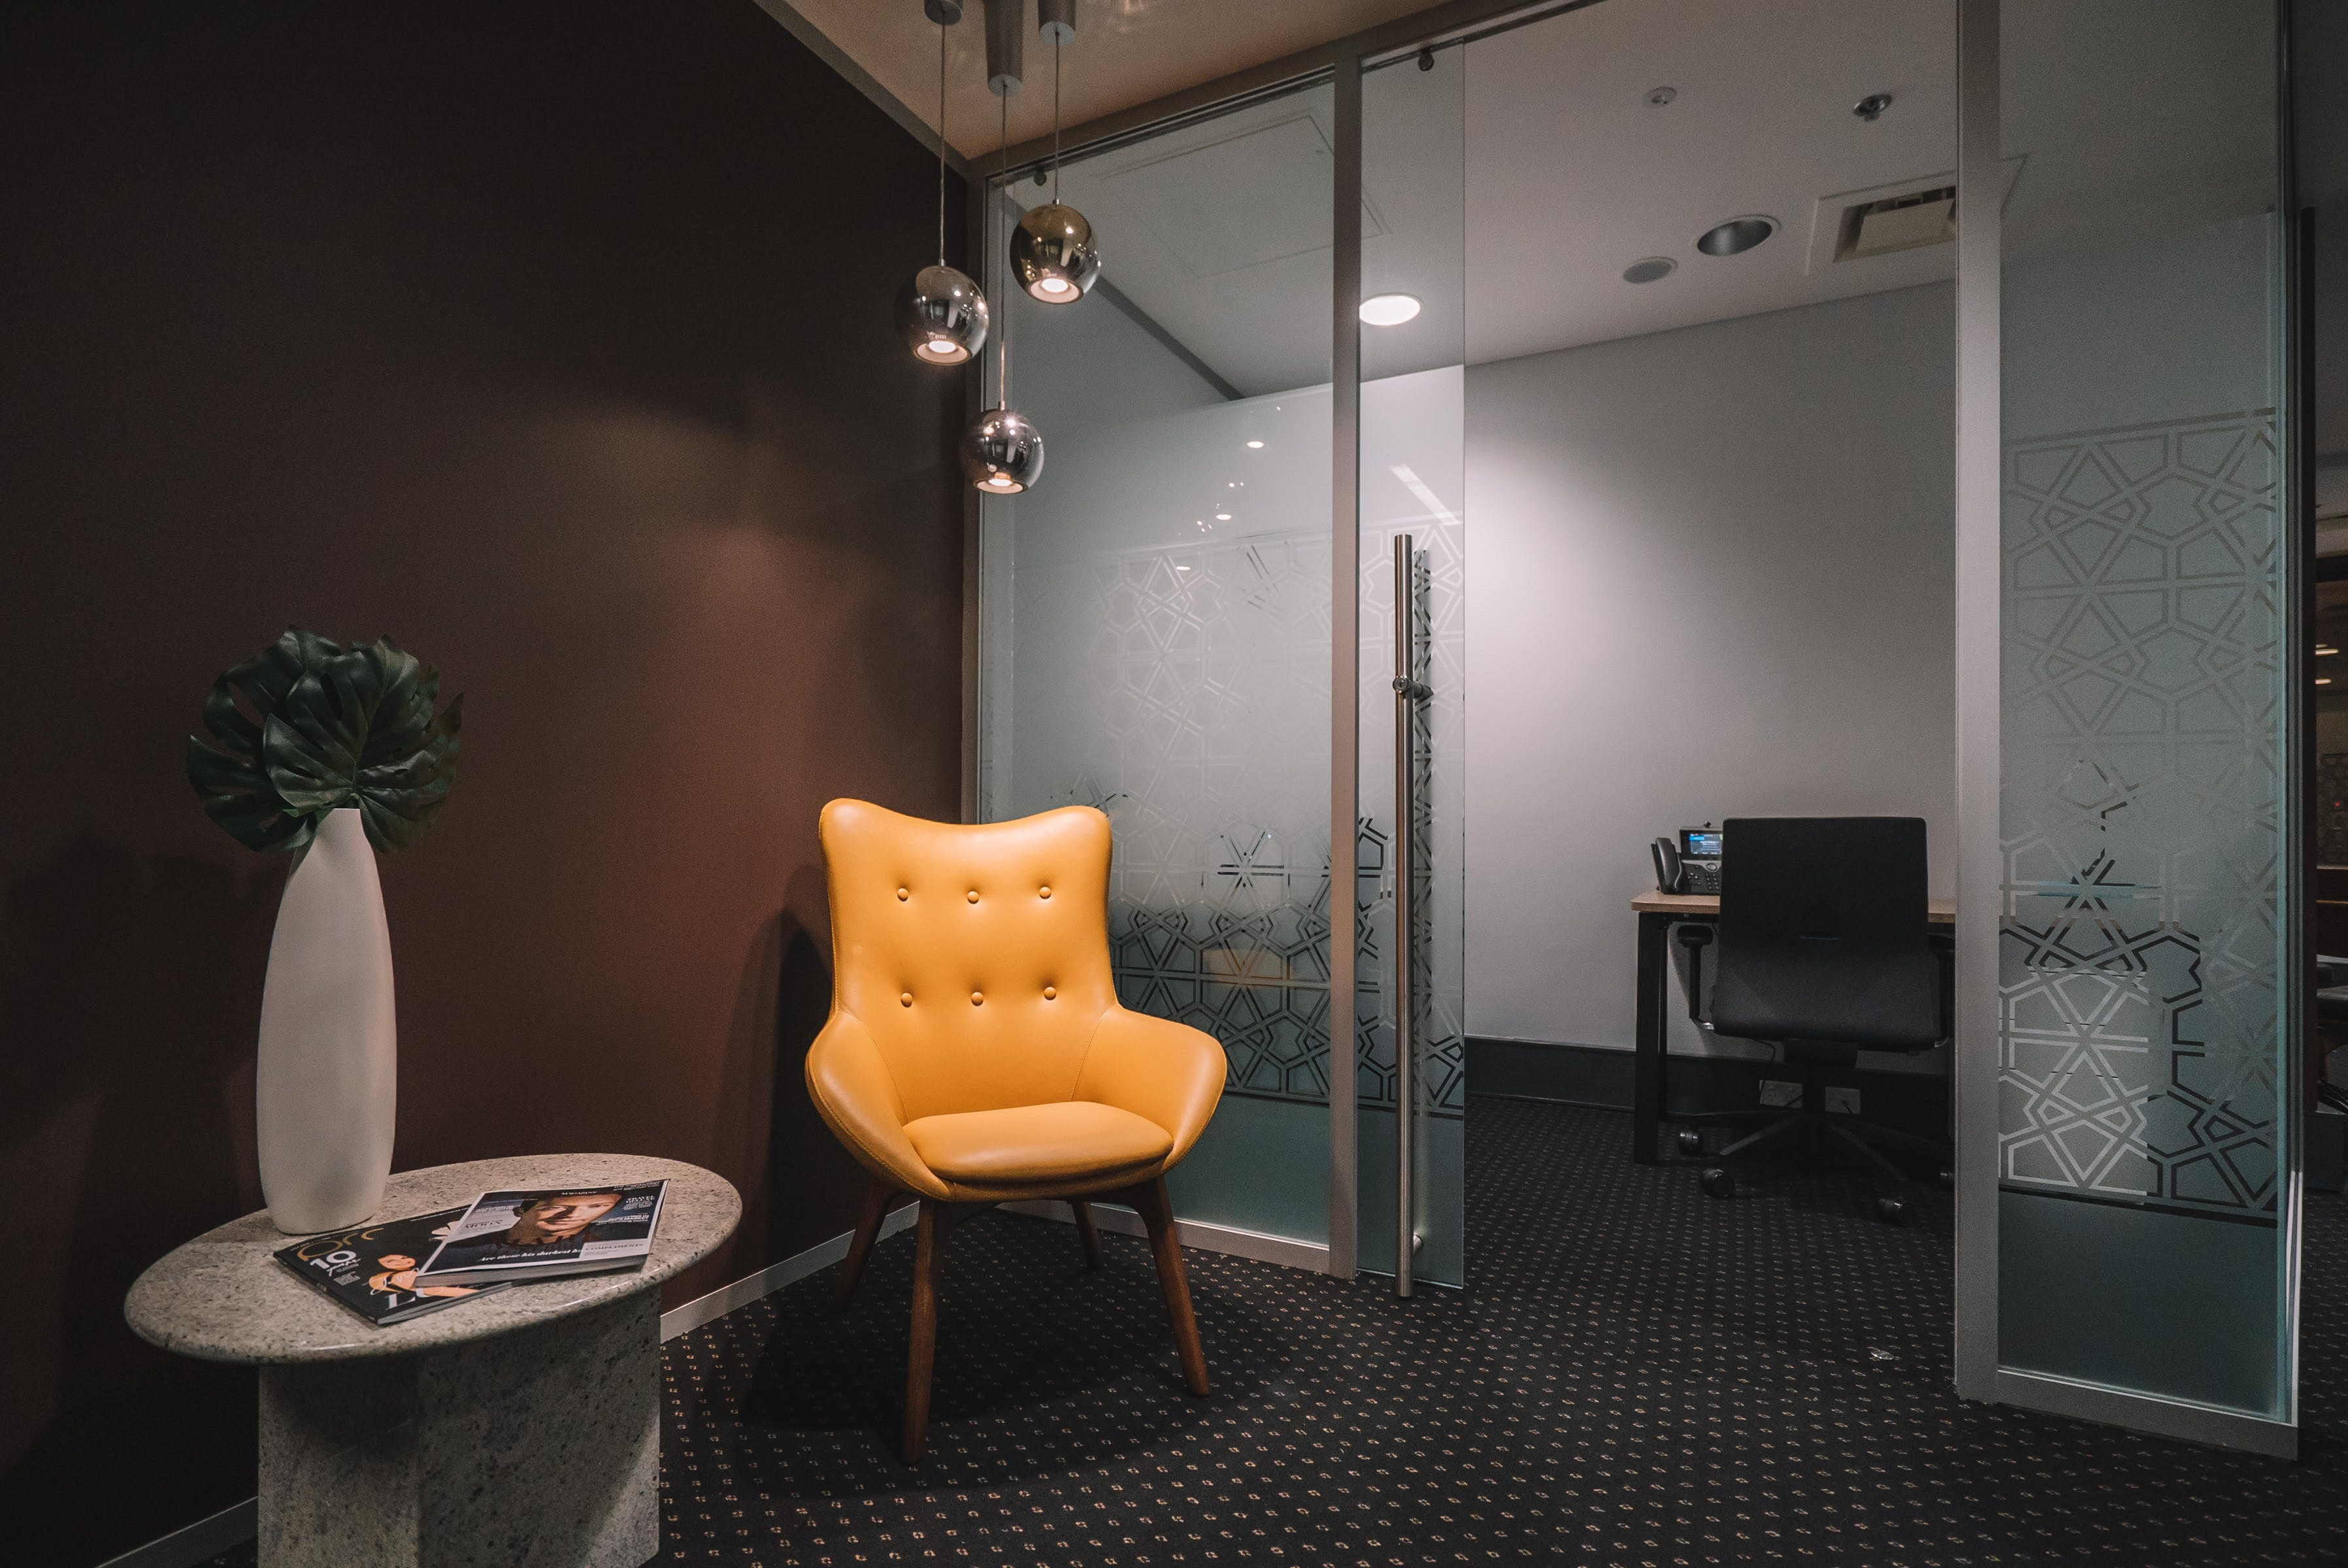 Day Suite 2, meeting room at Chifley Tower, image 1